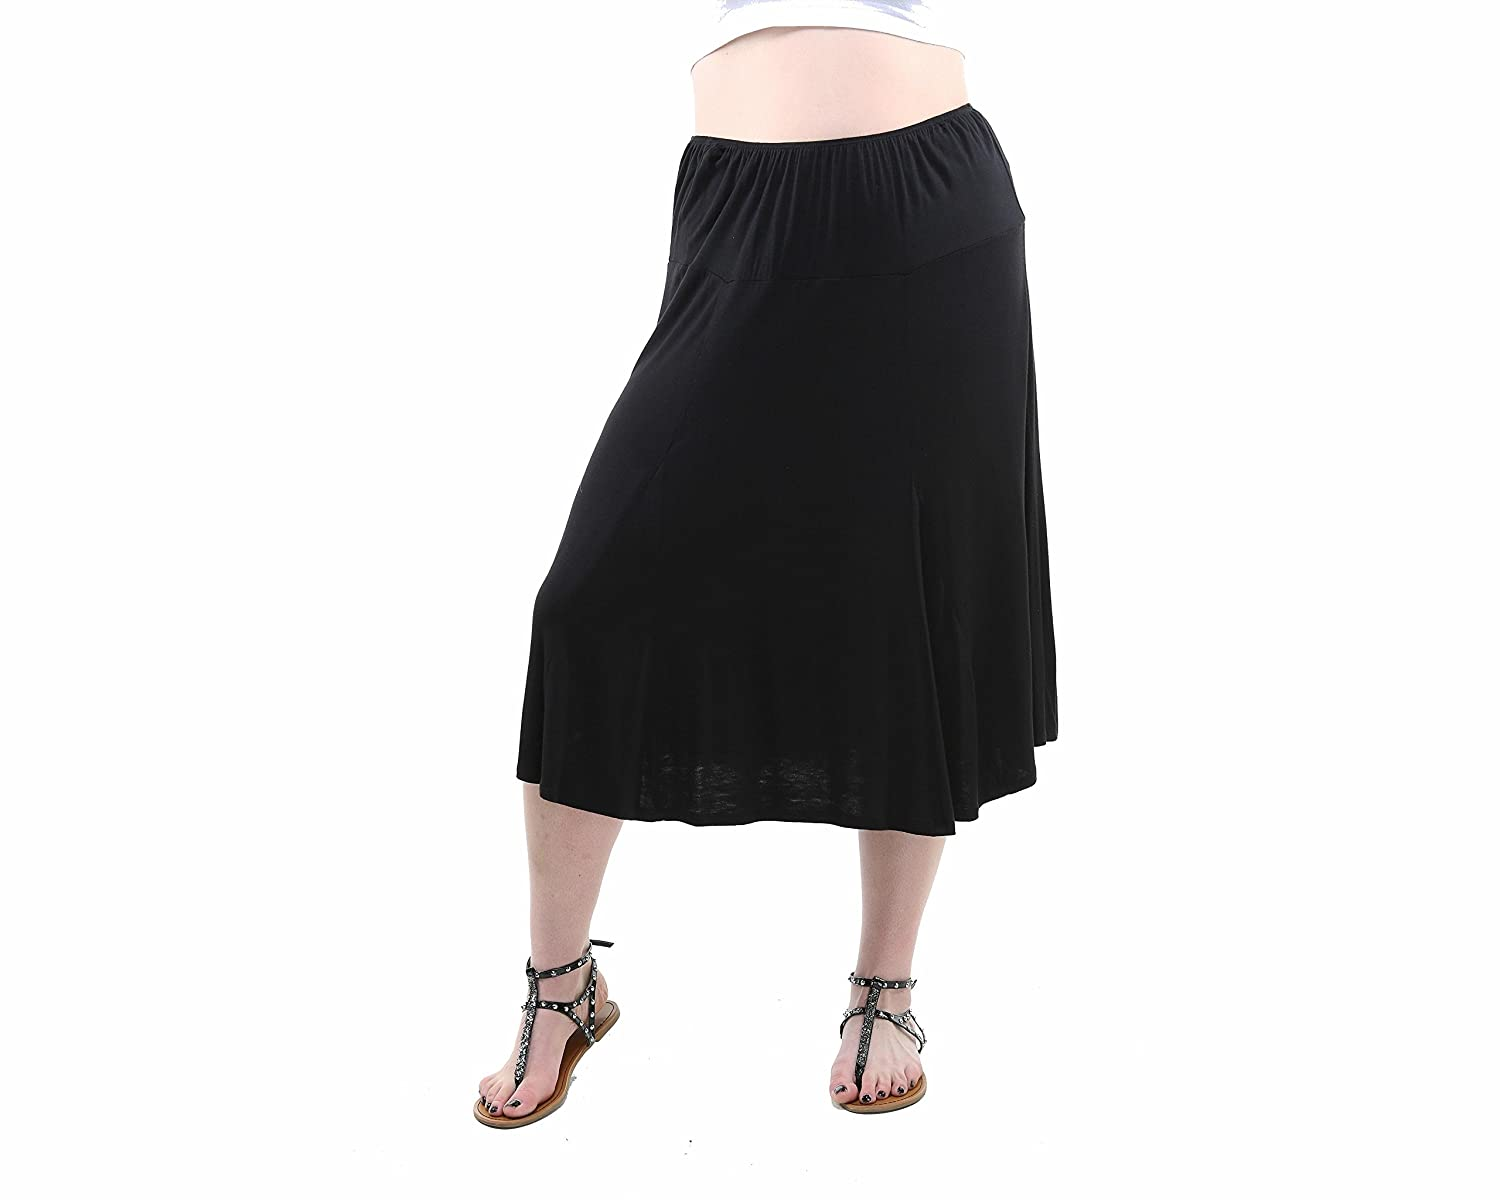 24/7 Comfort Apparel Plus Size Women's Calf-Length Skirt CF520P